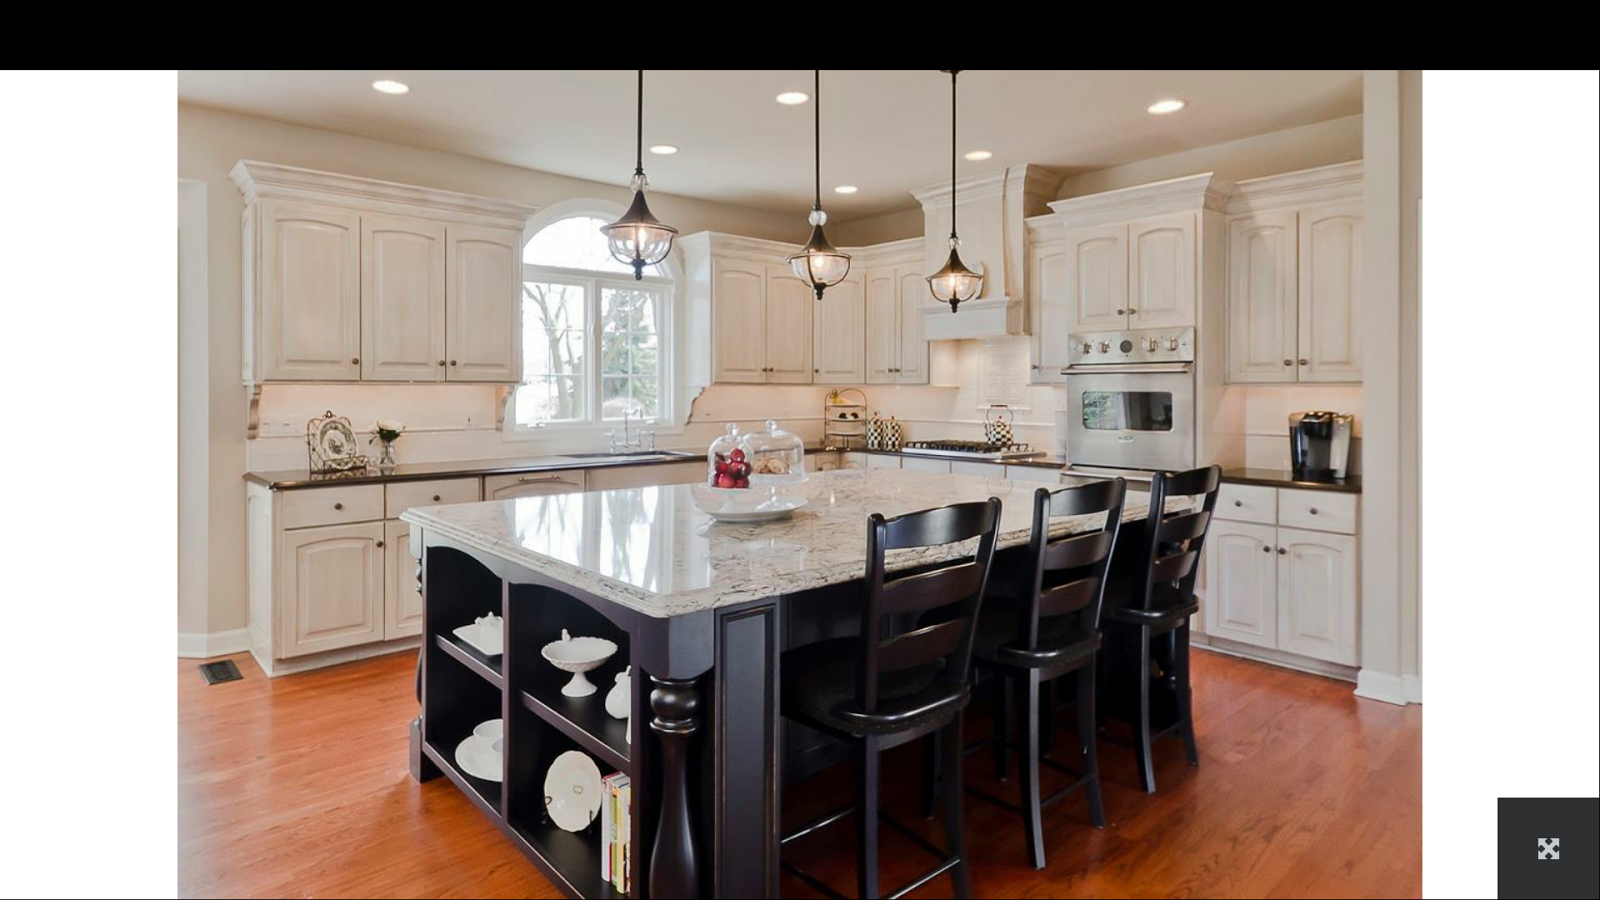 Kitchen Design Hd Wallpapers kitchen design ideas - android apps on google play